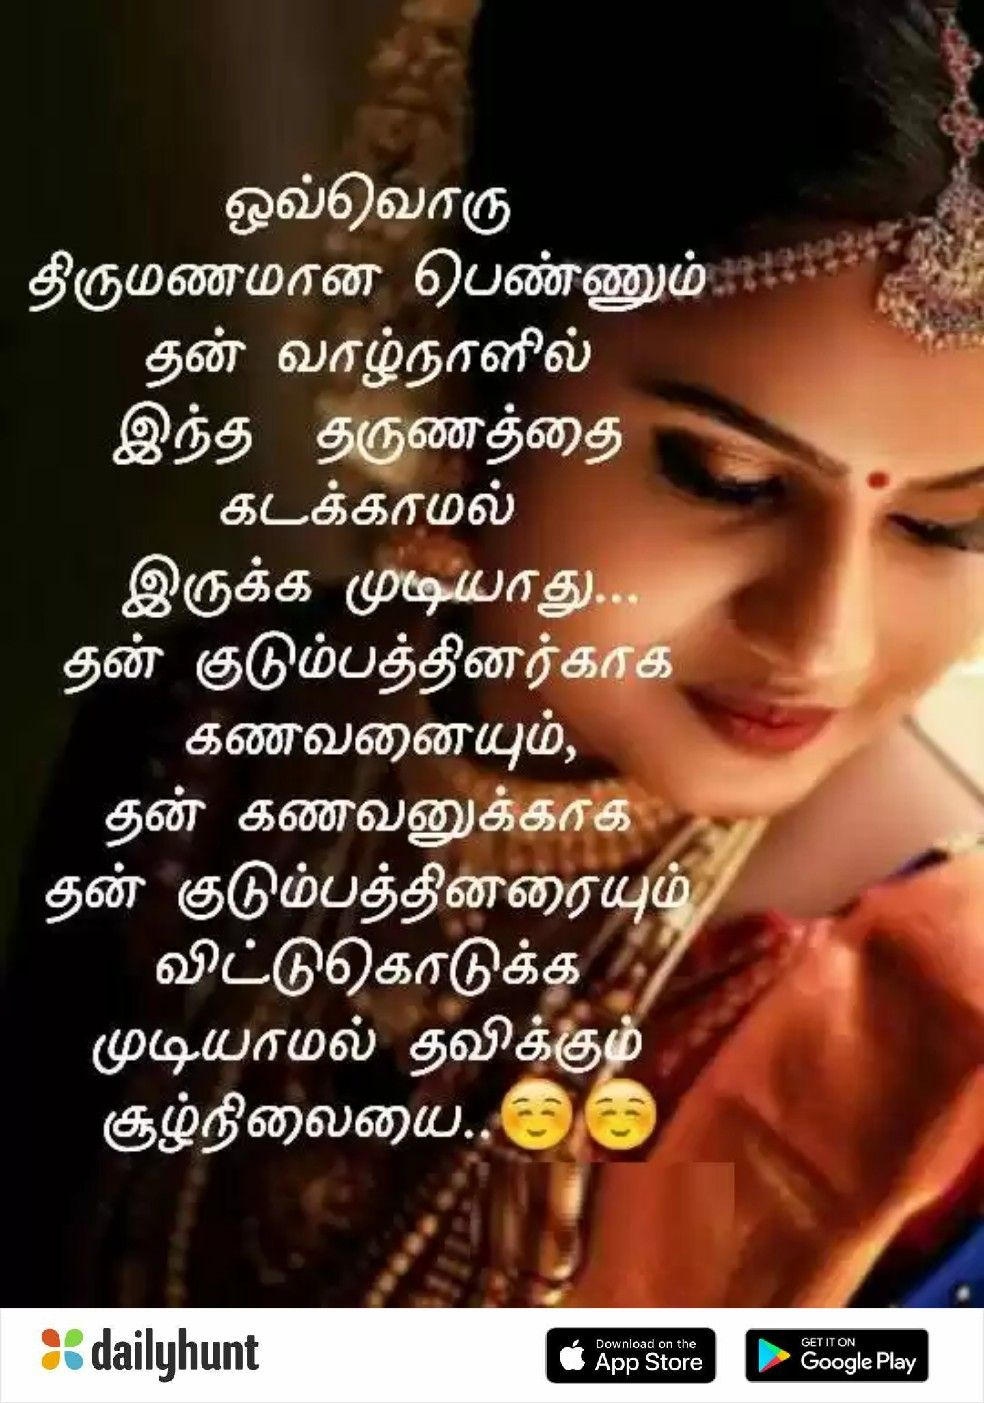 Pin by M.Marimuthu on marimuthu Tamil love quotes